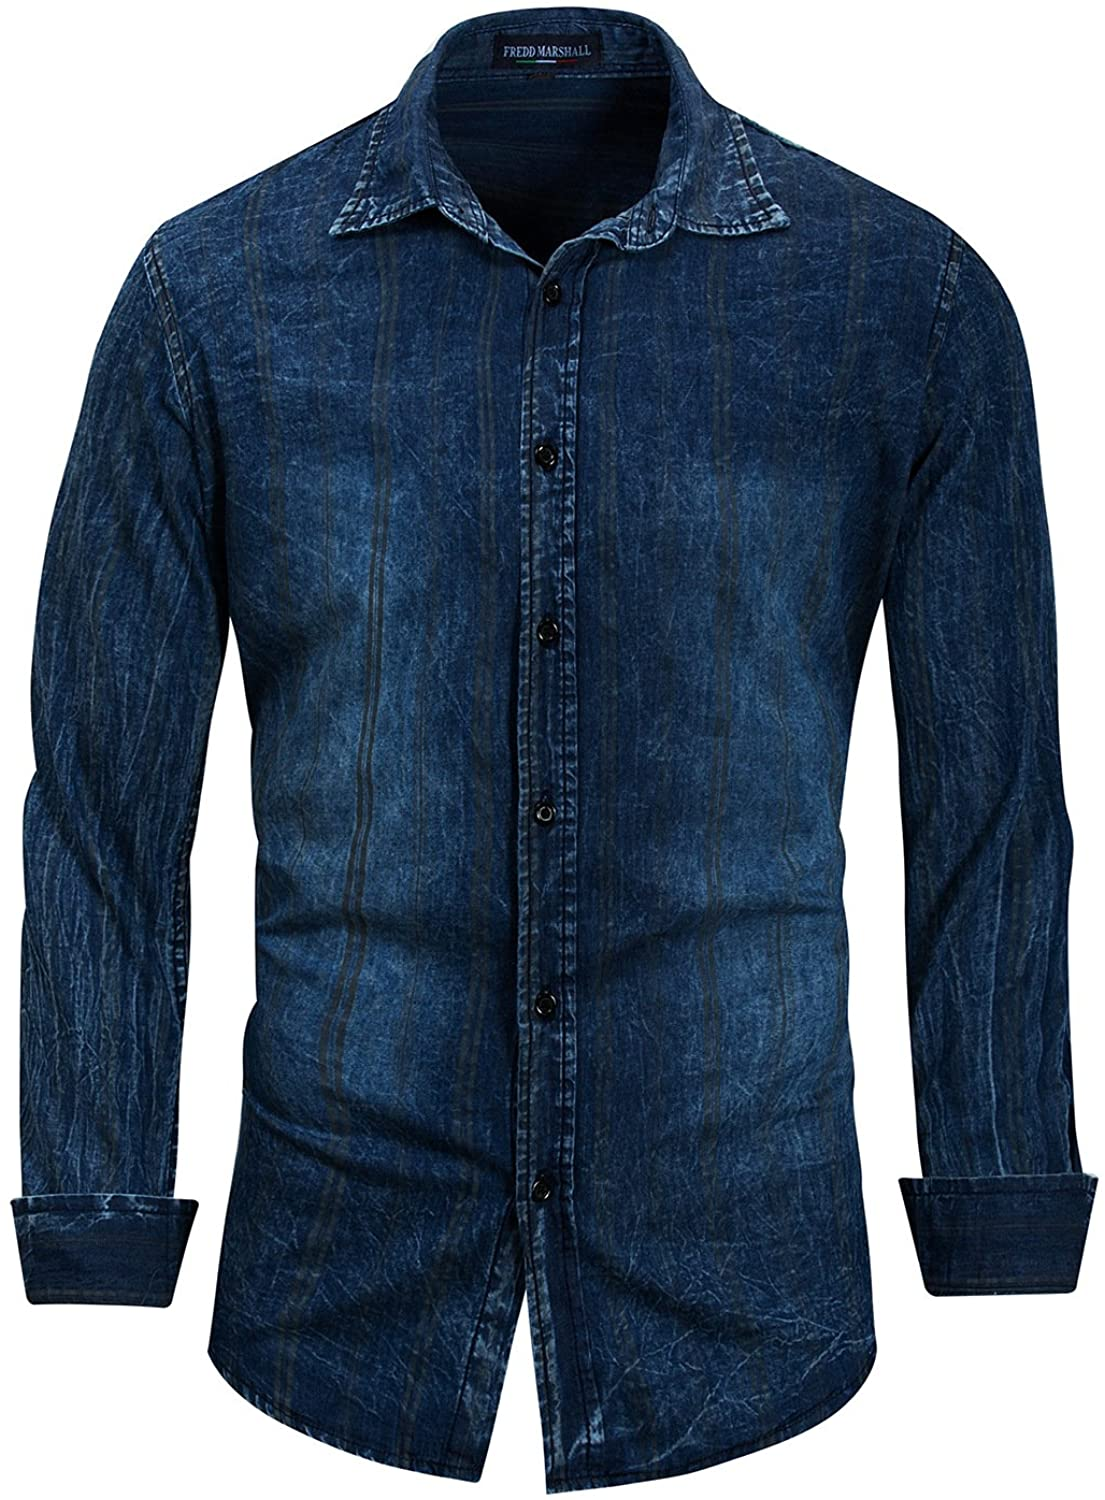 Men's Button-Down Collar Long Sleeve Jeans Blue Cotton Classical Style Casual Dress Shirts